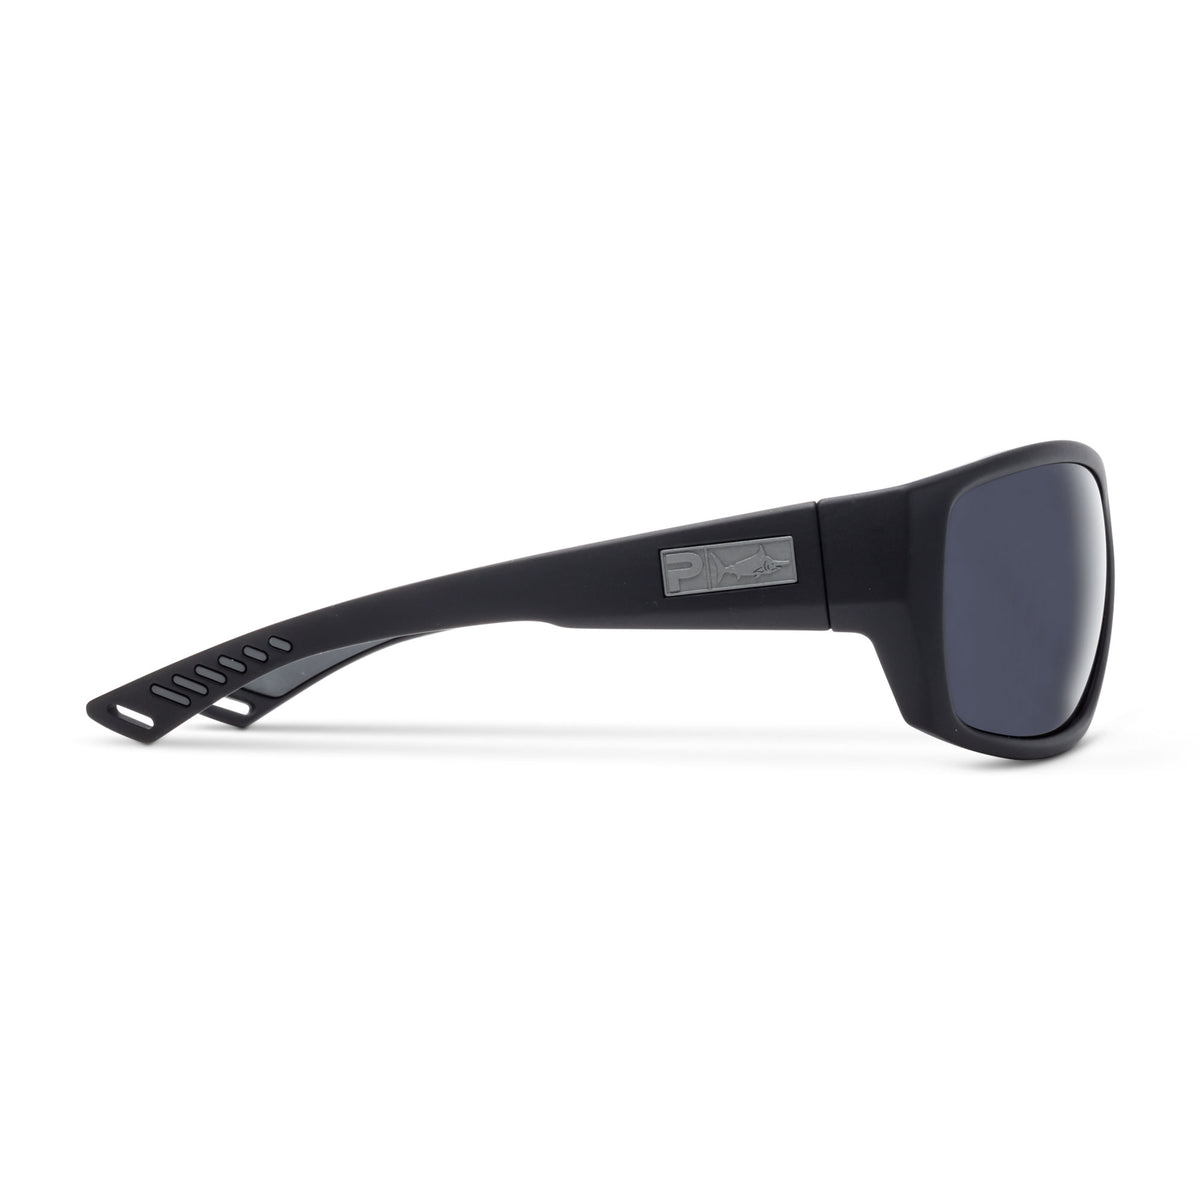 Pursuit - Polarized XP-700™ Polycarbonate Lens Big Image - 3